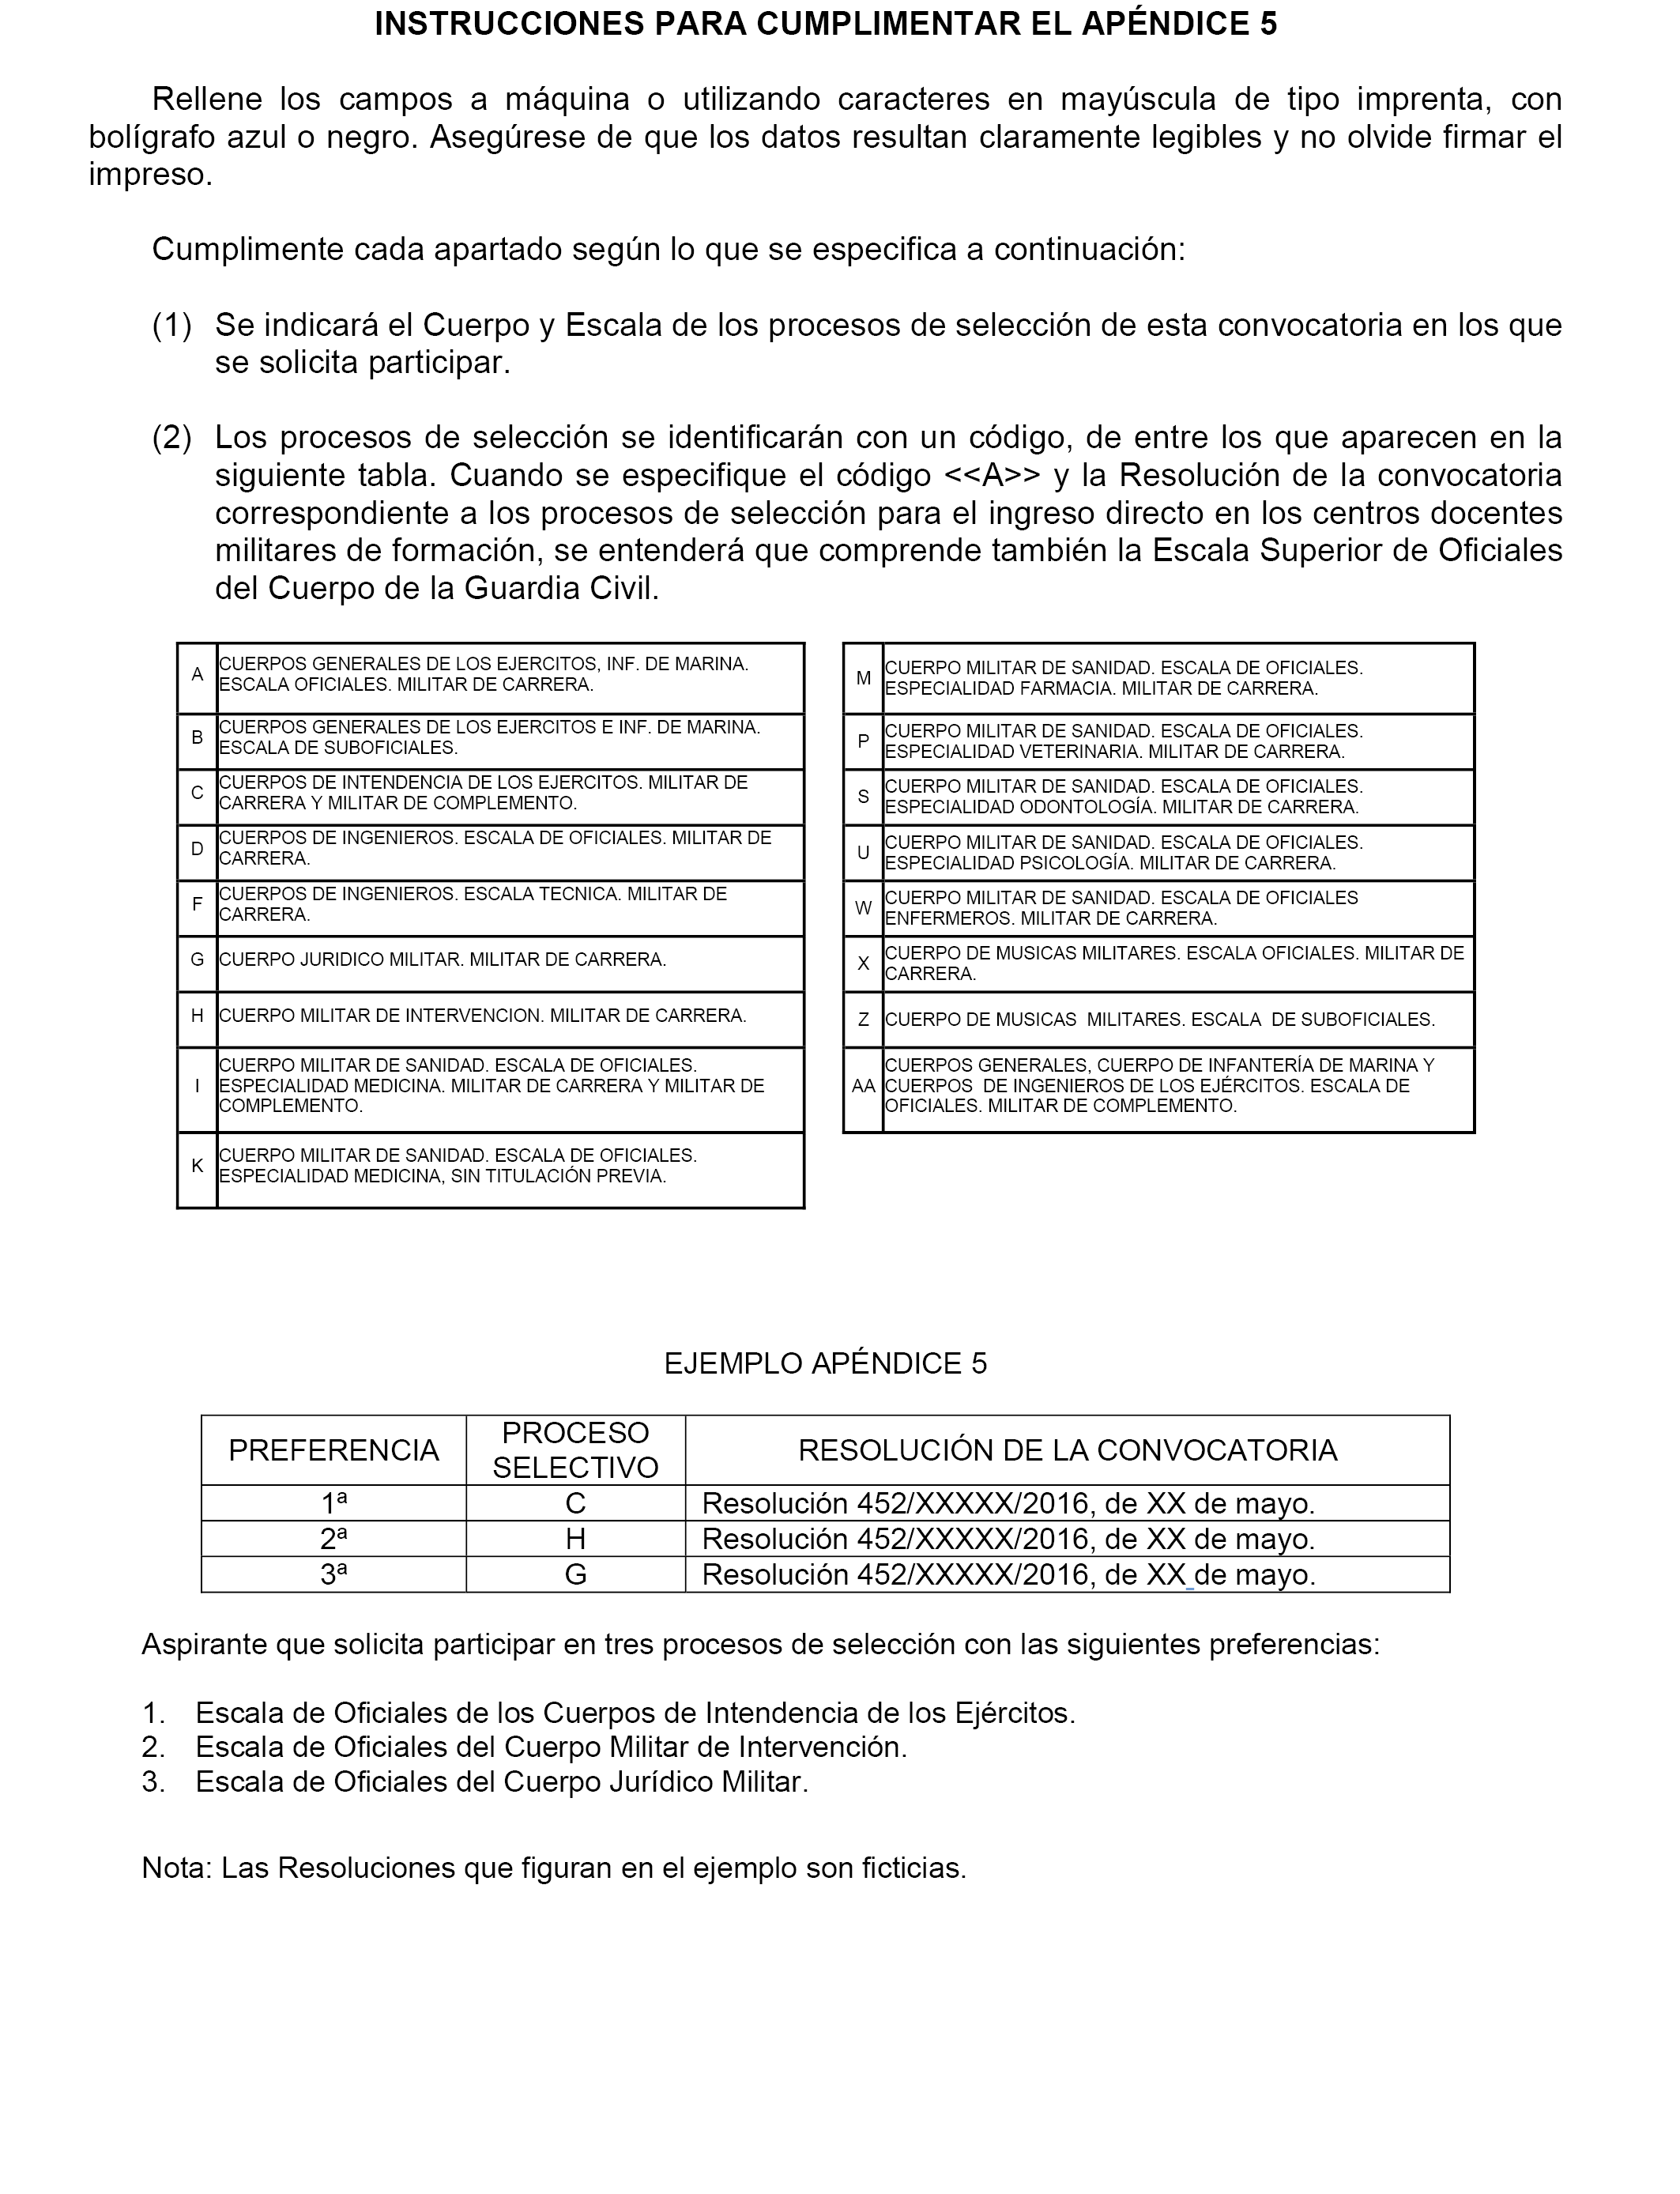 El rinc n canario de la oposici n resoluci n 452 38066 for Resolucion docentes 2016